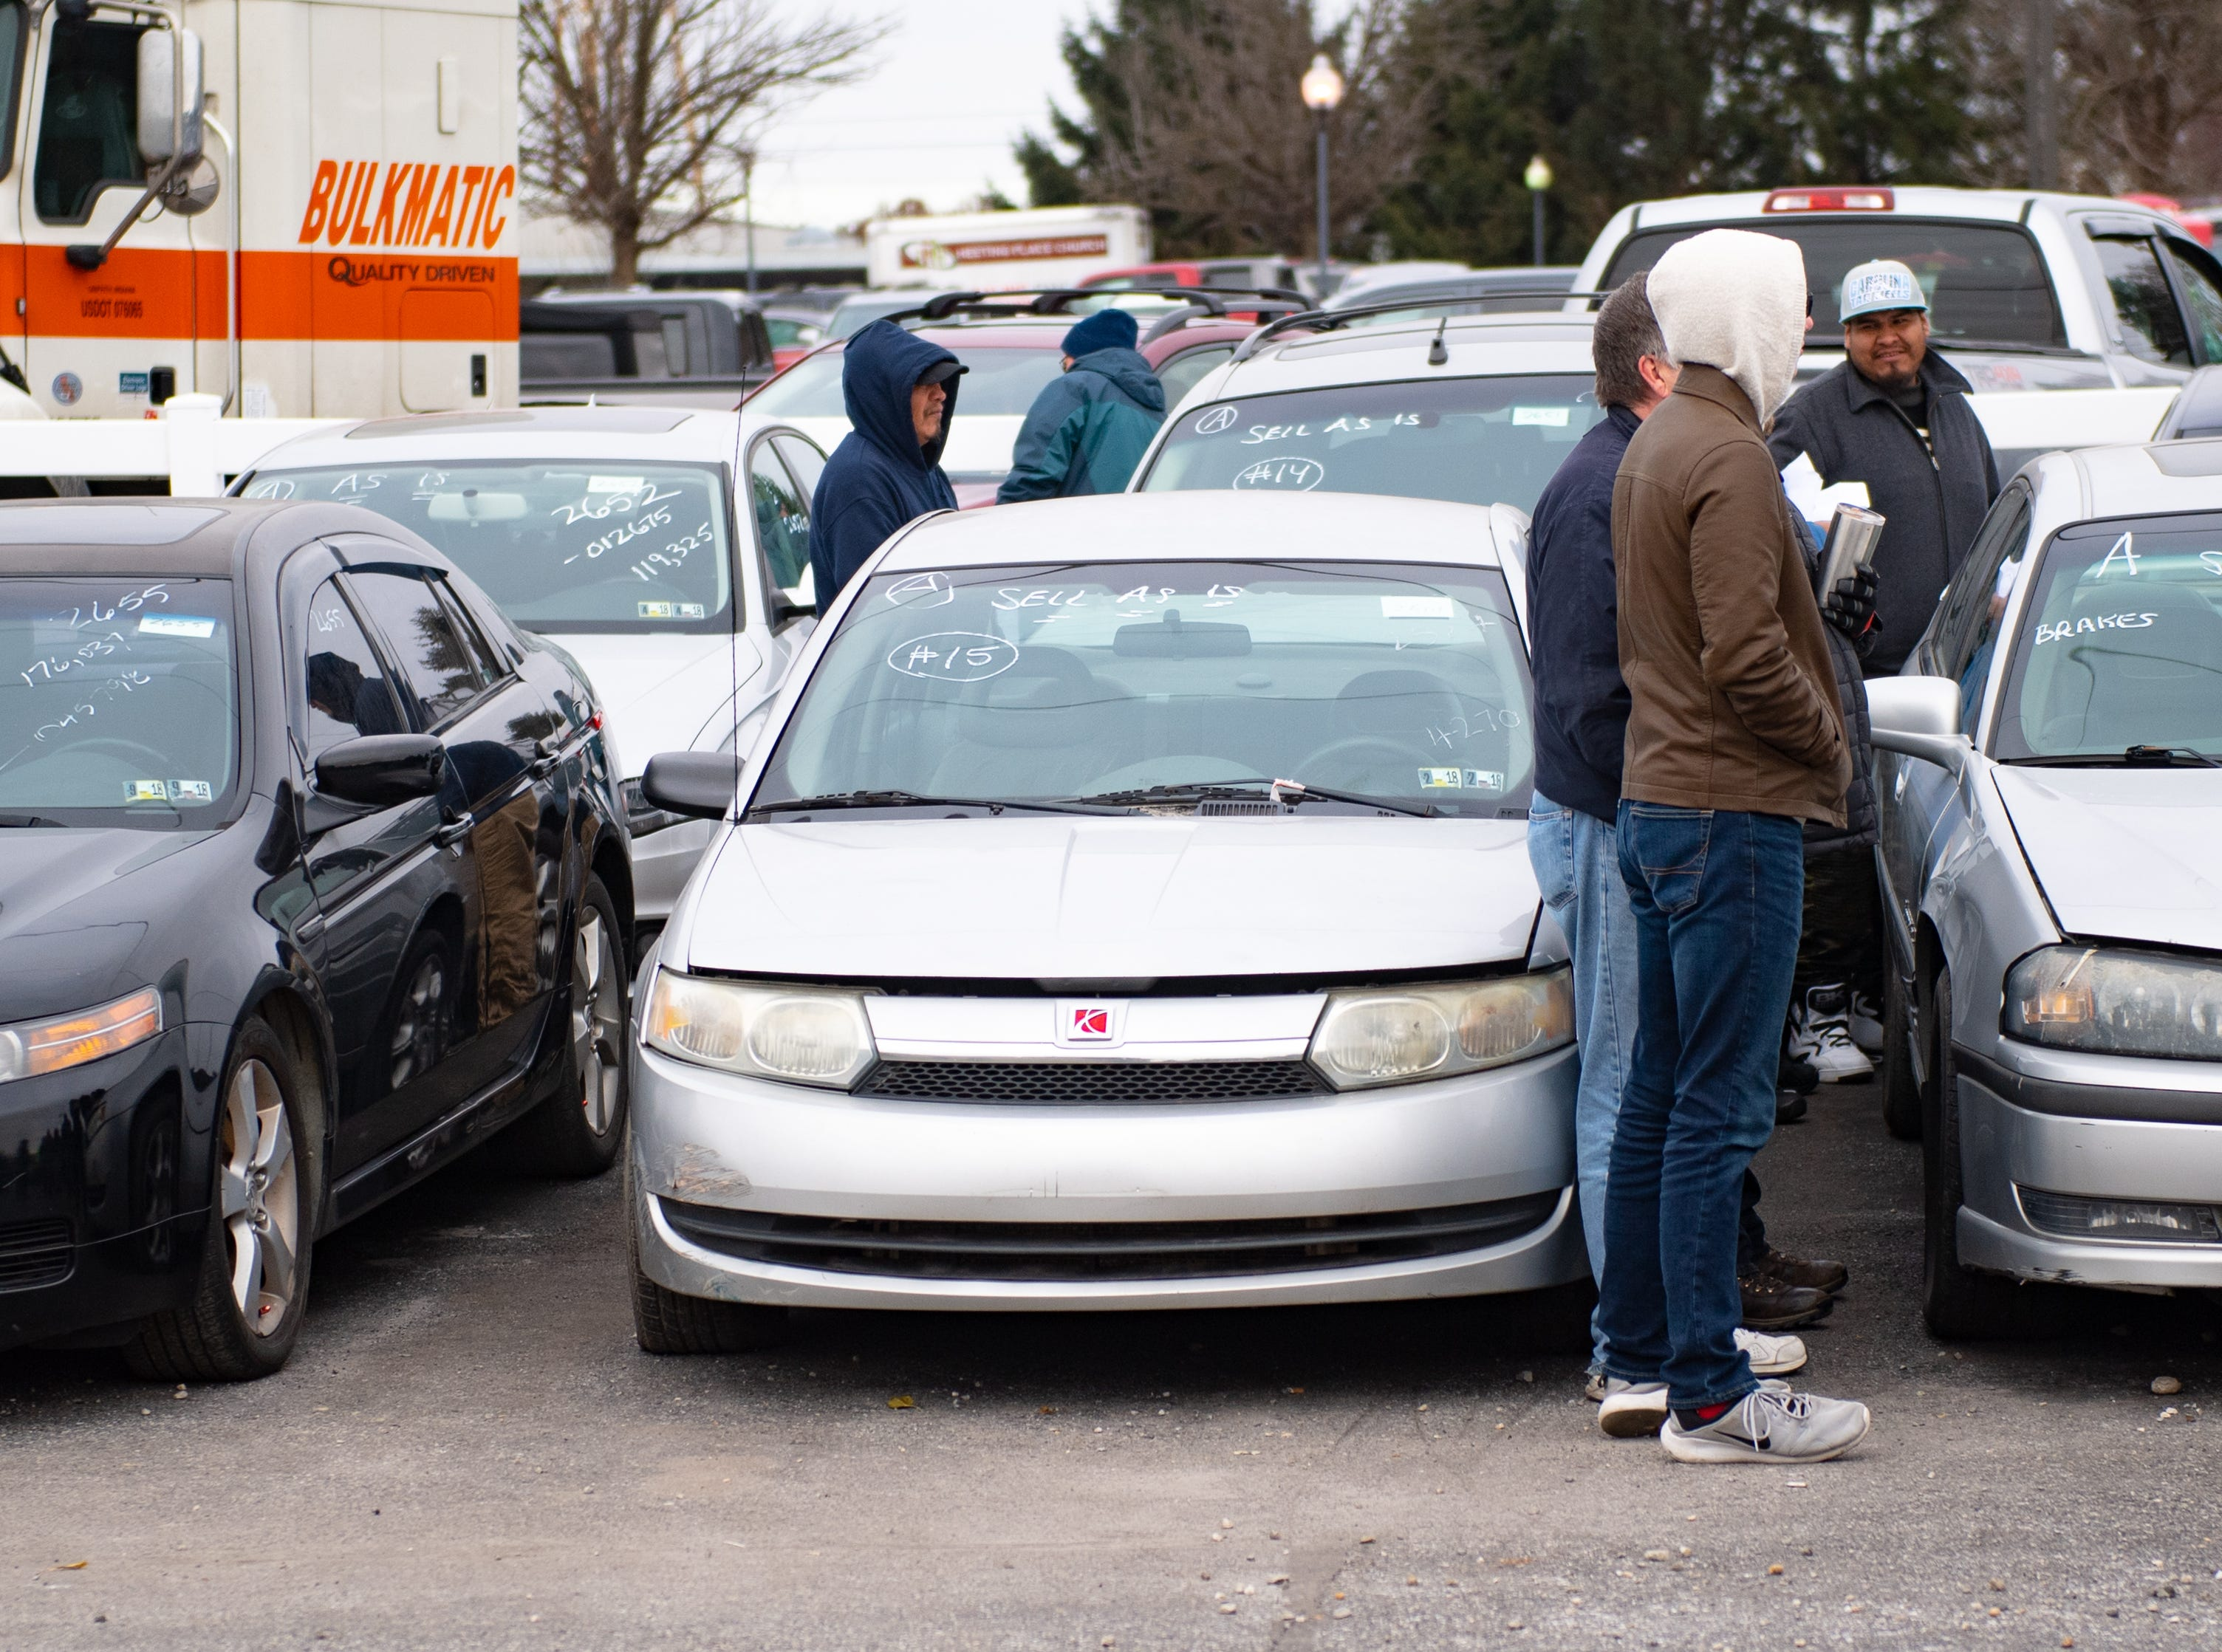 All of the cars sold were previously seized during drug investigations in York County, November 23, 2018.